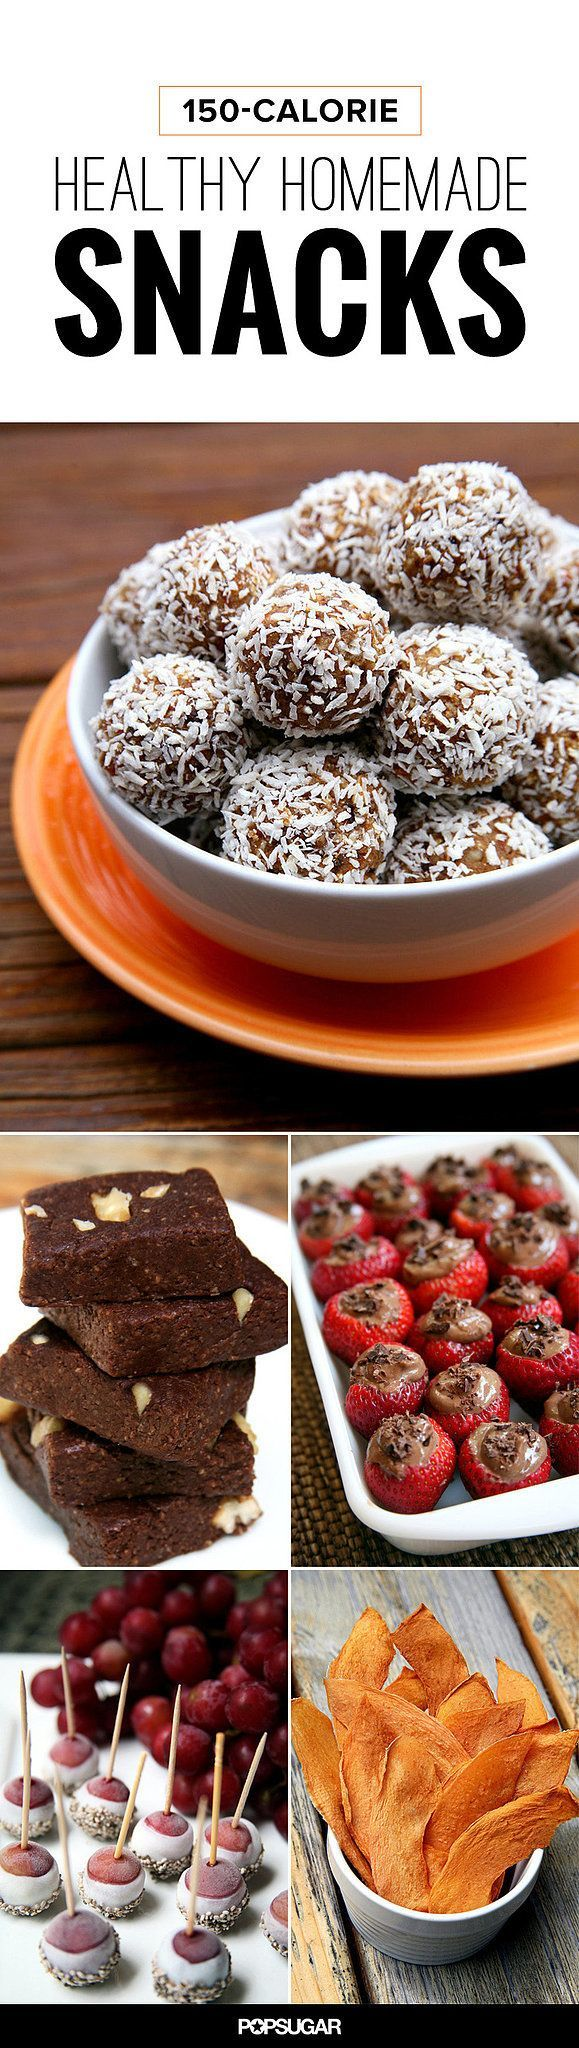 45 Snacks to Satisfy Hunger, All Under 150 Calories